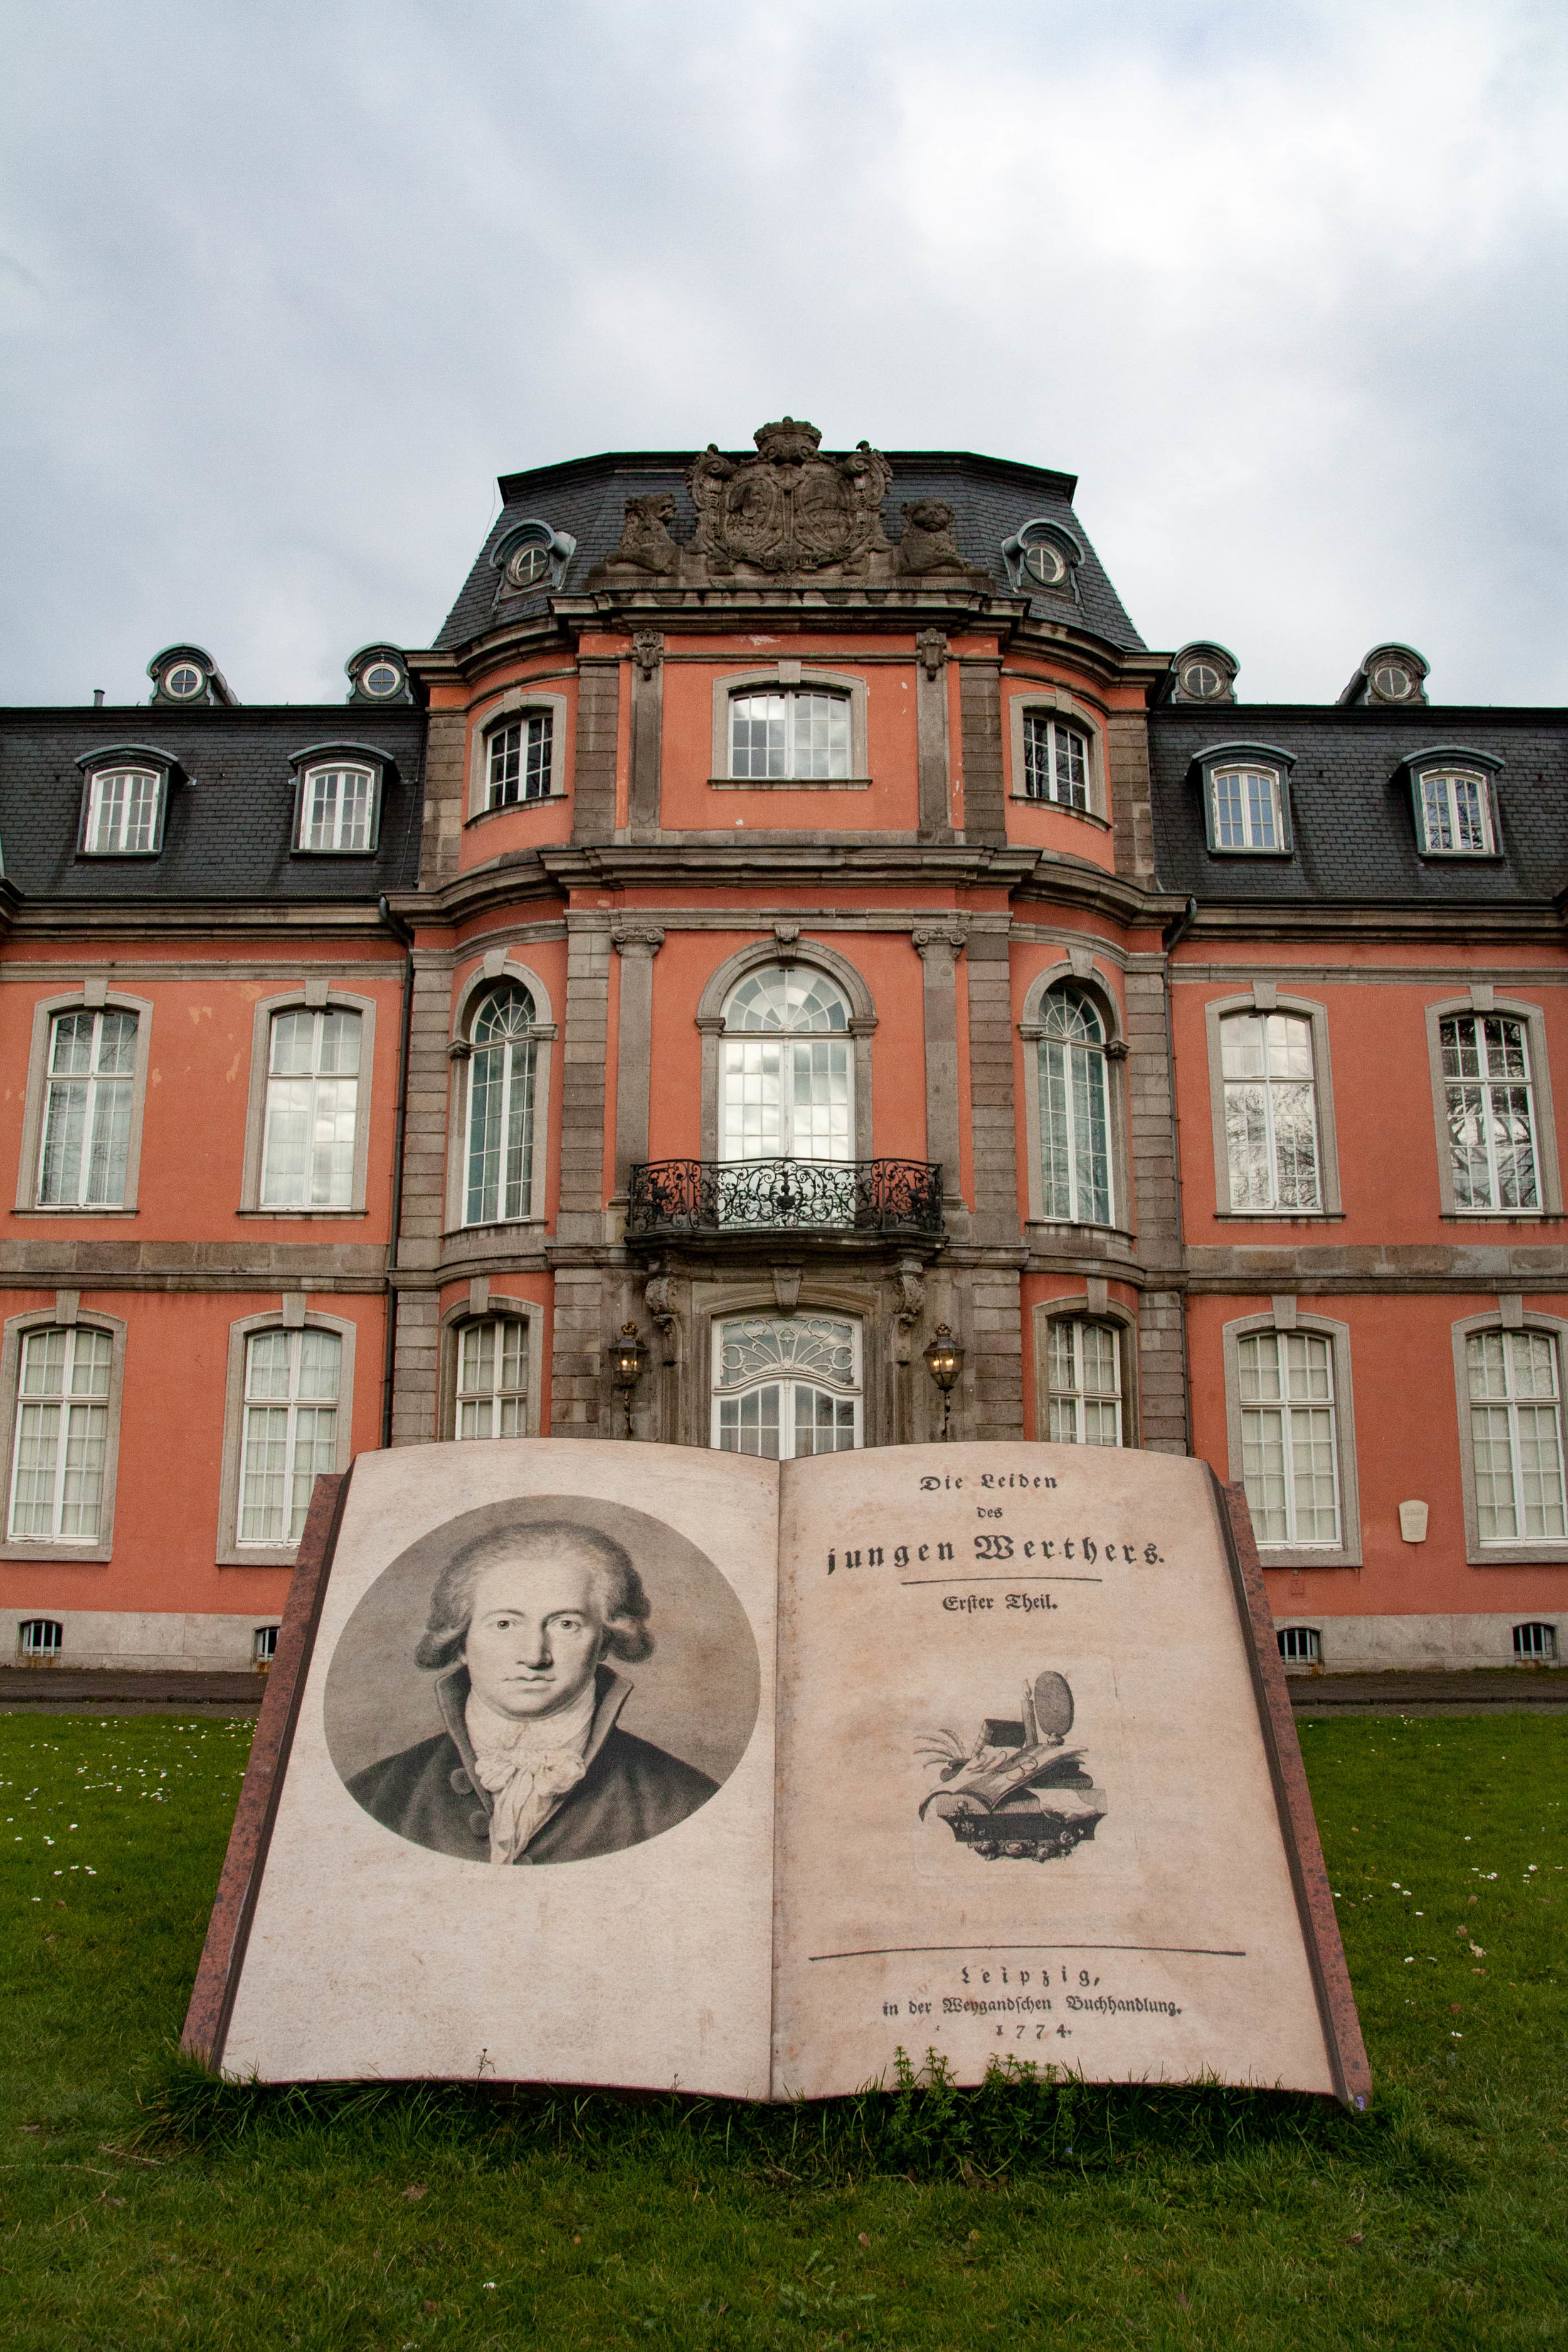 Goethe Museum (author of Faust)